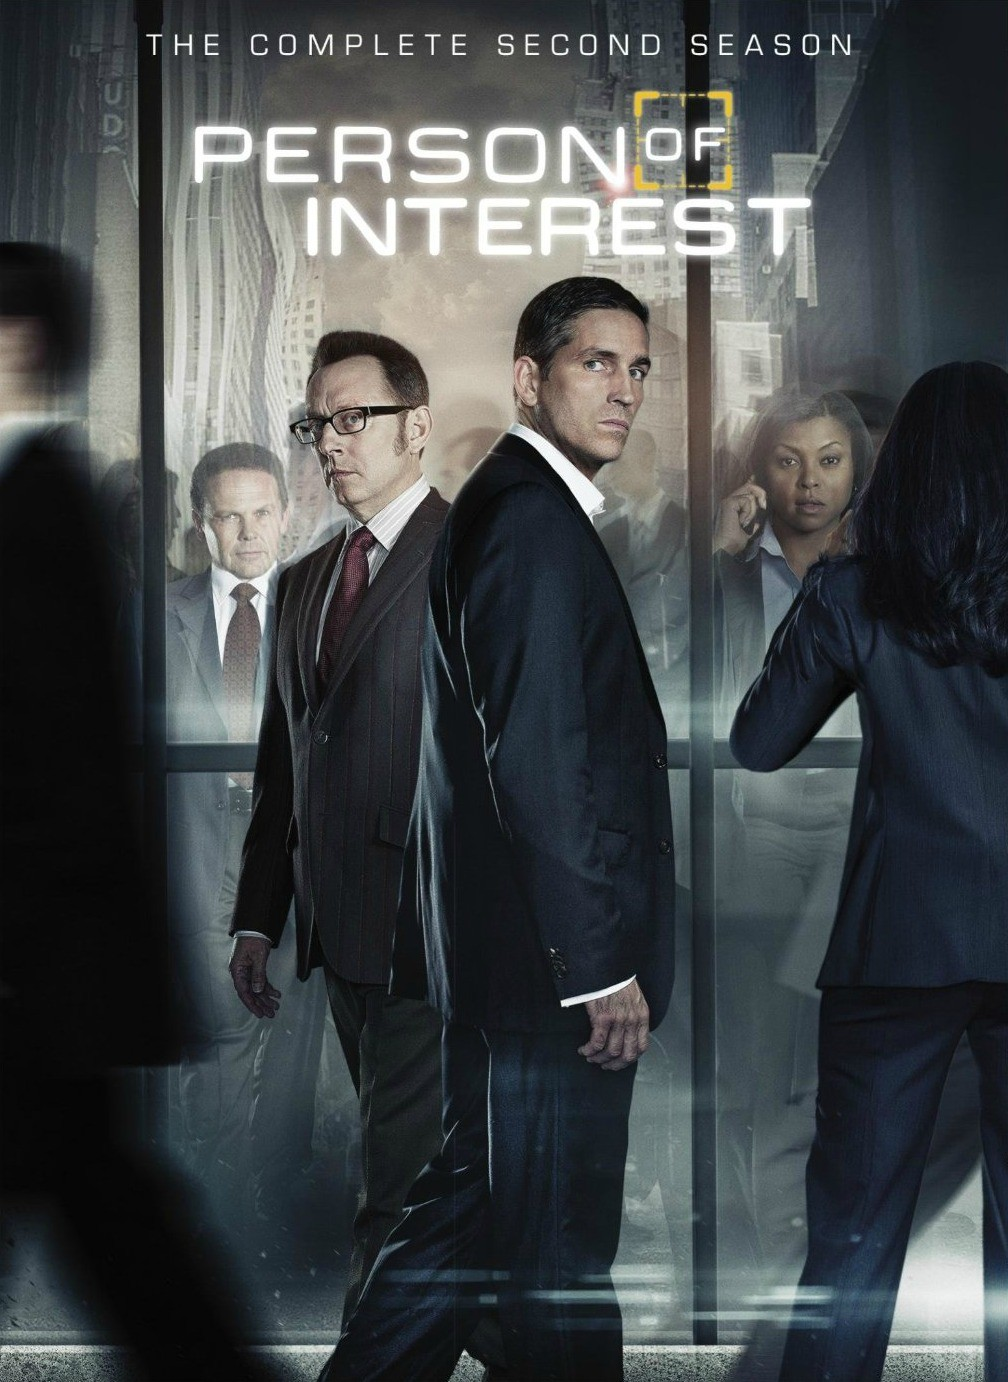 Person of Interest (Season 2) 疑犯追踪 第二季